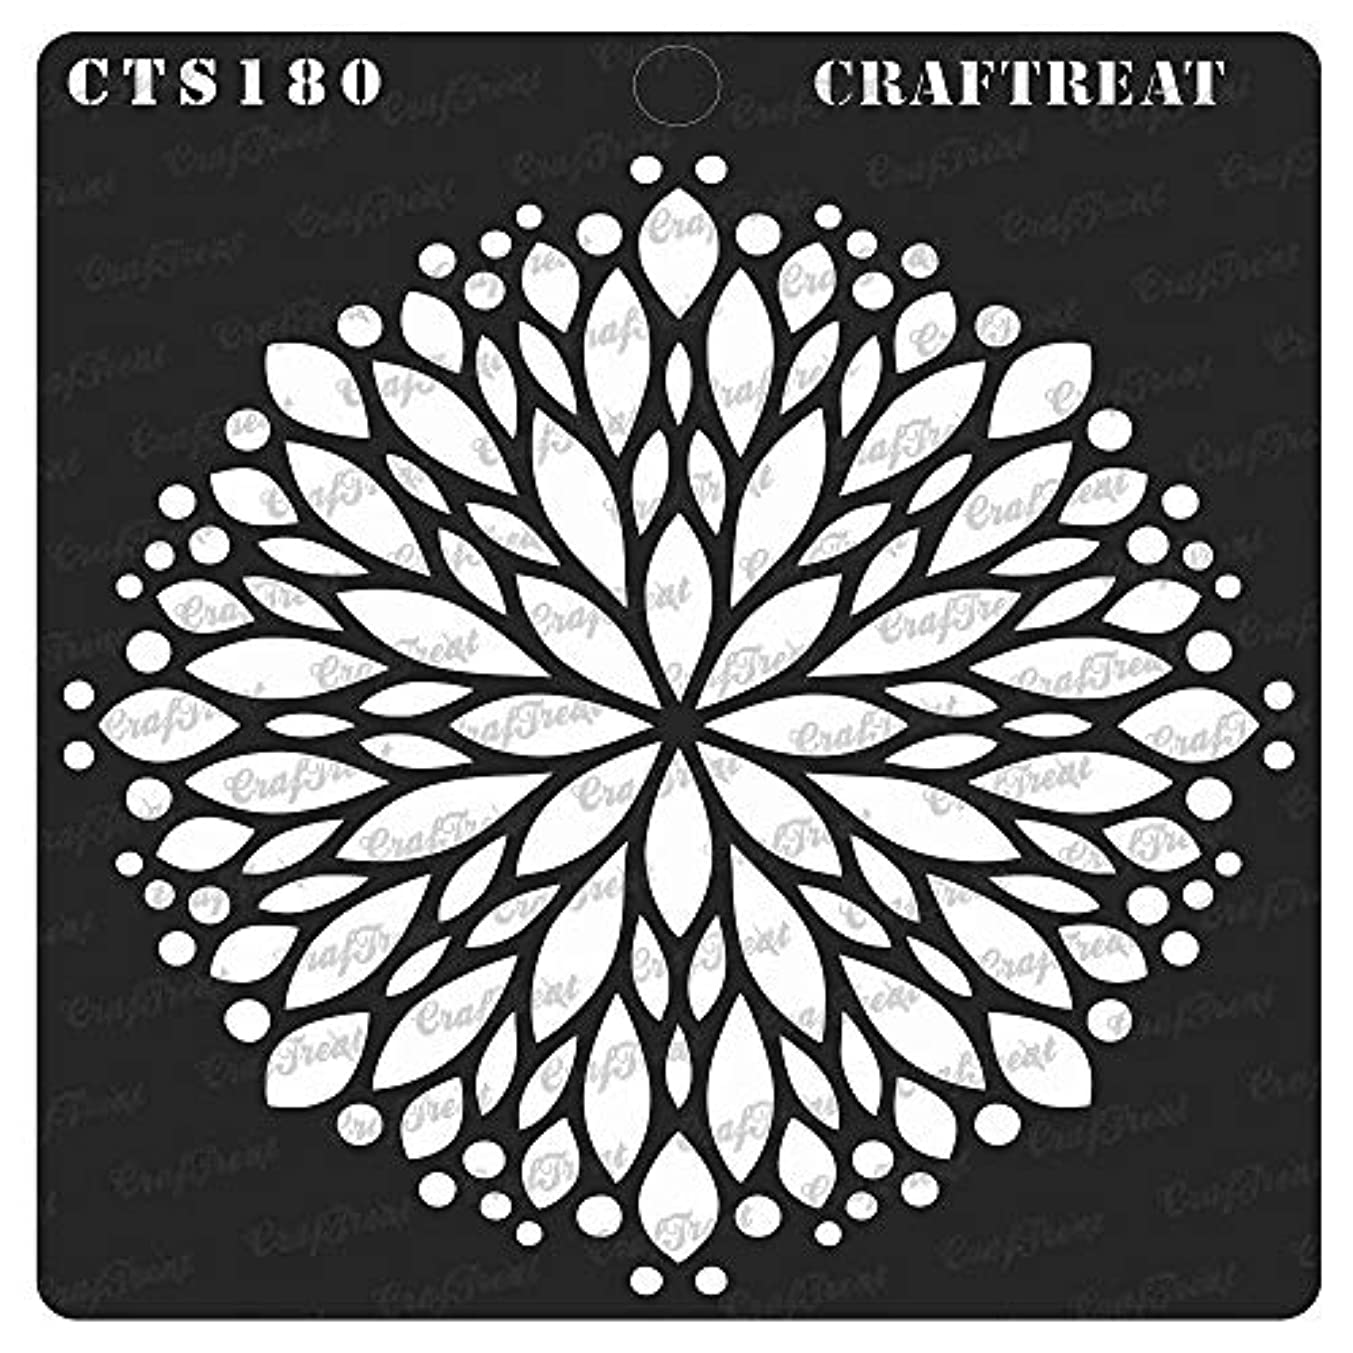 CrafTreat Stencil - Flower Burst | Reusable Painting Template for Journal, Home Decor, Crafting, DIY Albums, Scrapbook, Decoration and Printing on Paper, Floor, Wall, Tile, Fabric, Wood 6